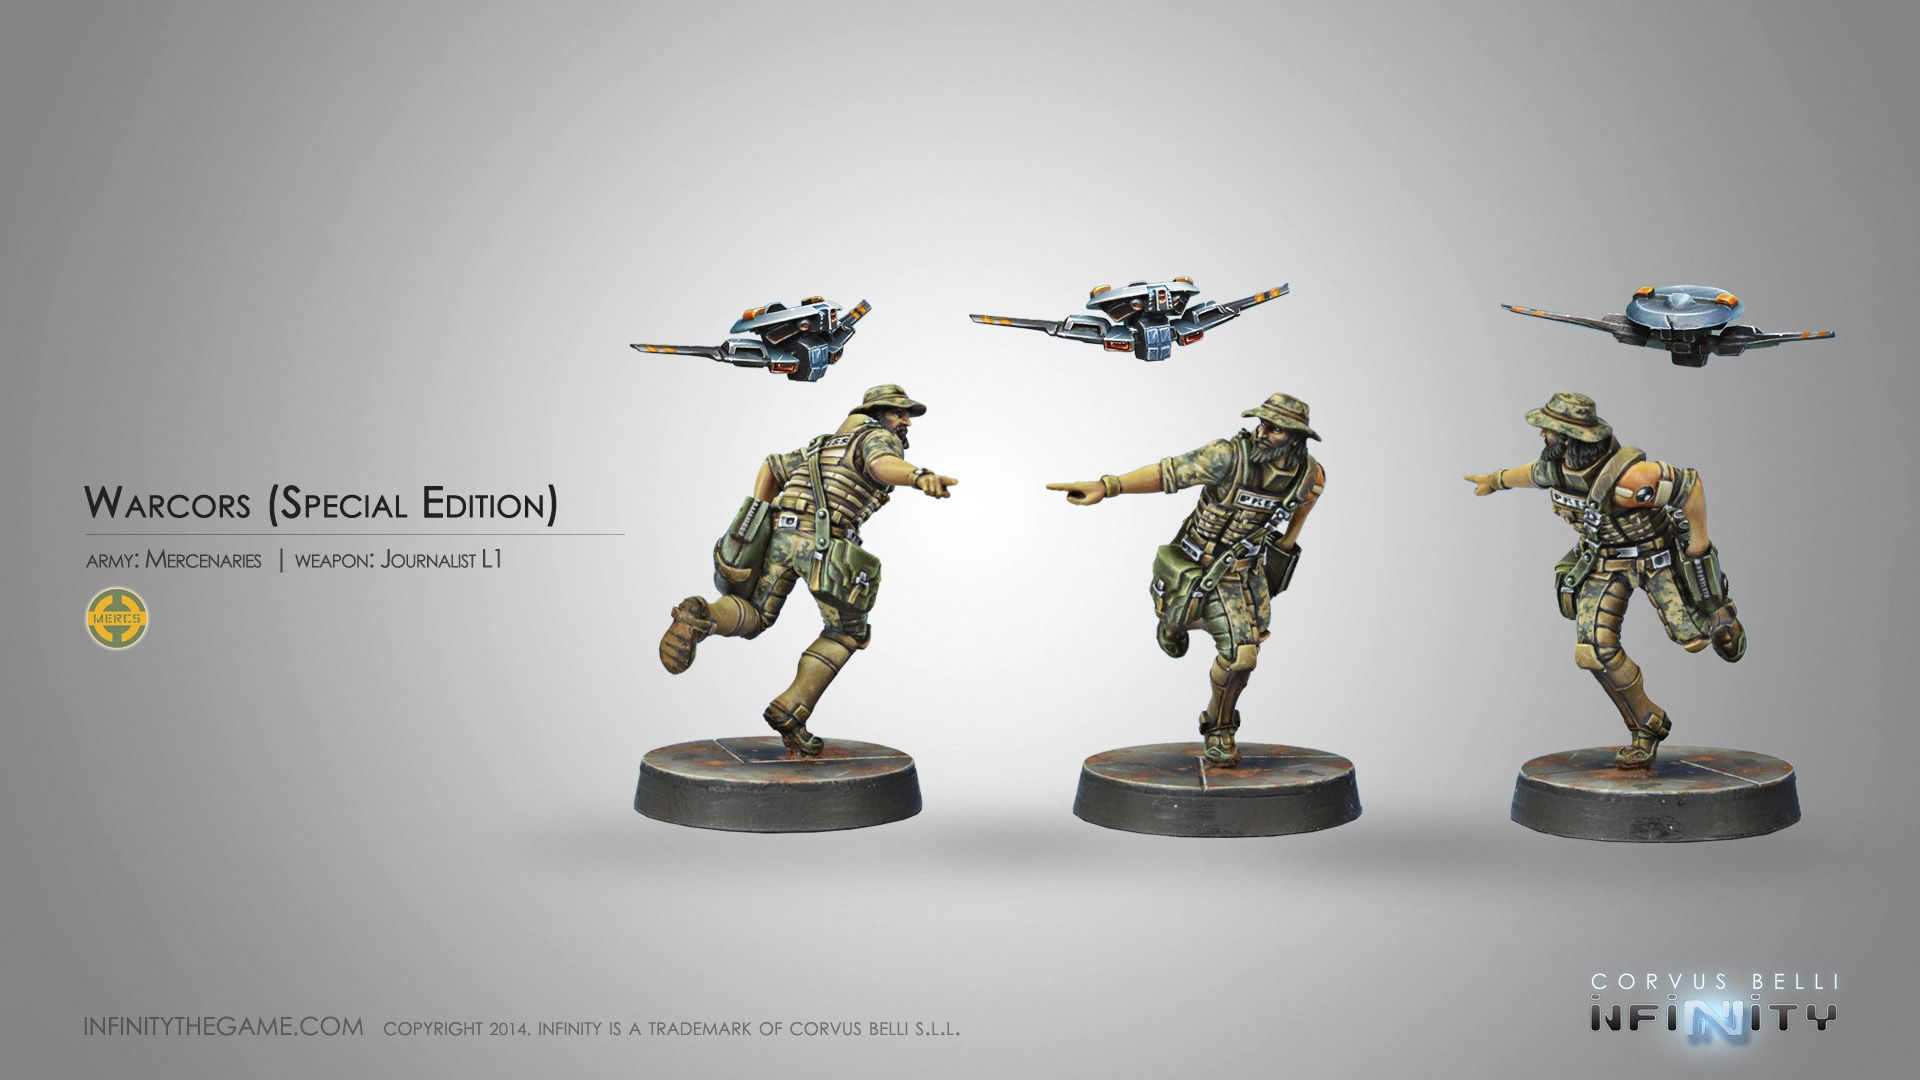 Warcors (Special Edition) - Exclusive for members of Warcor Program